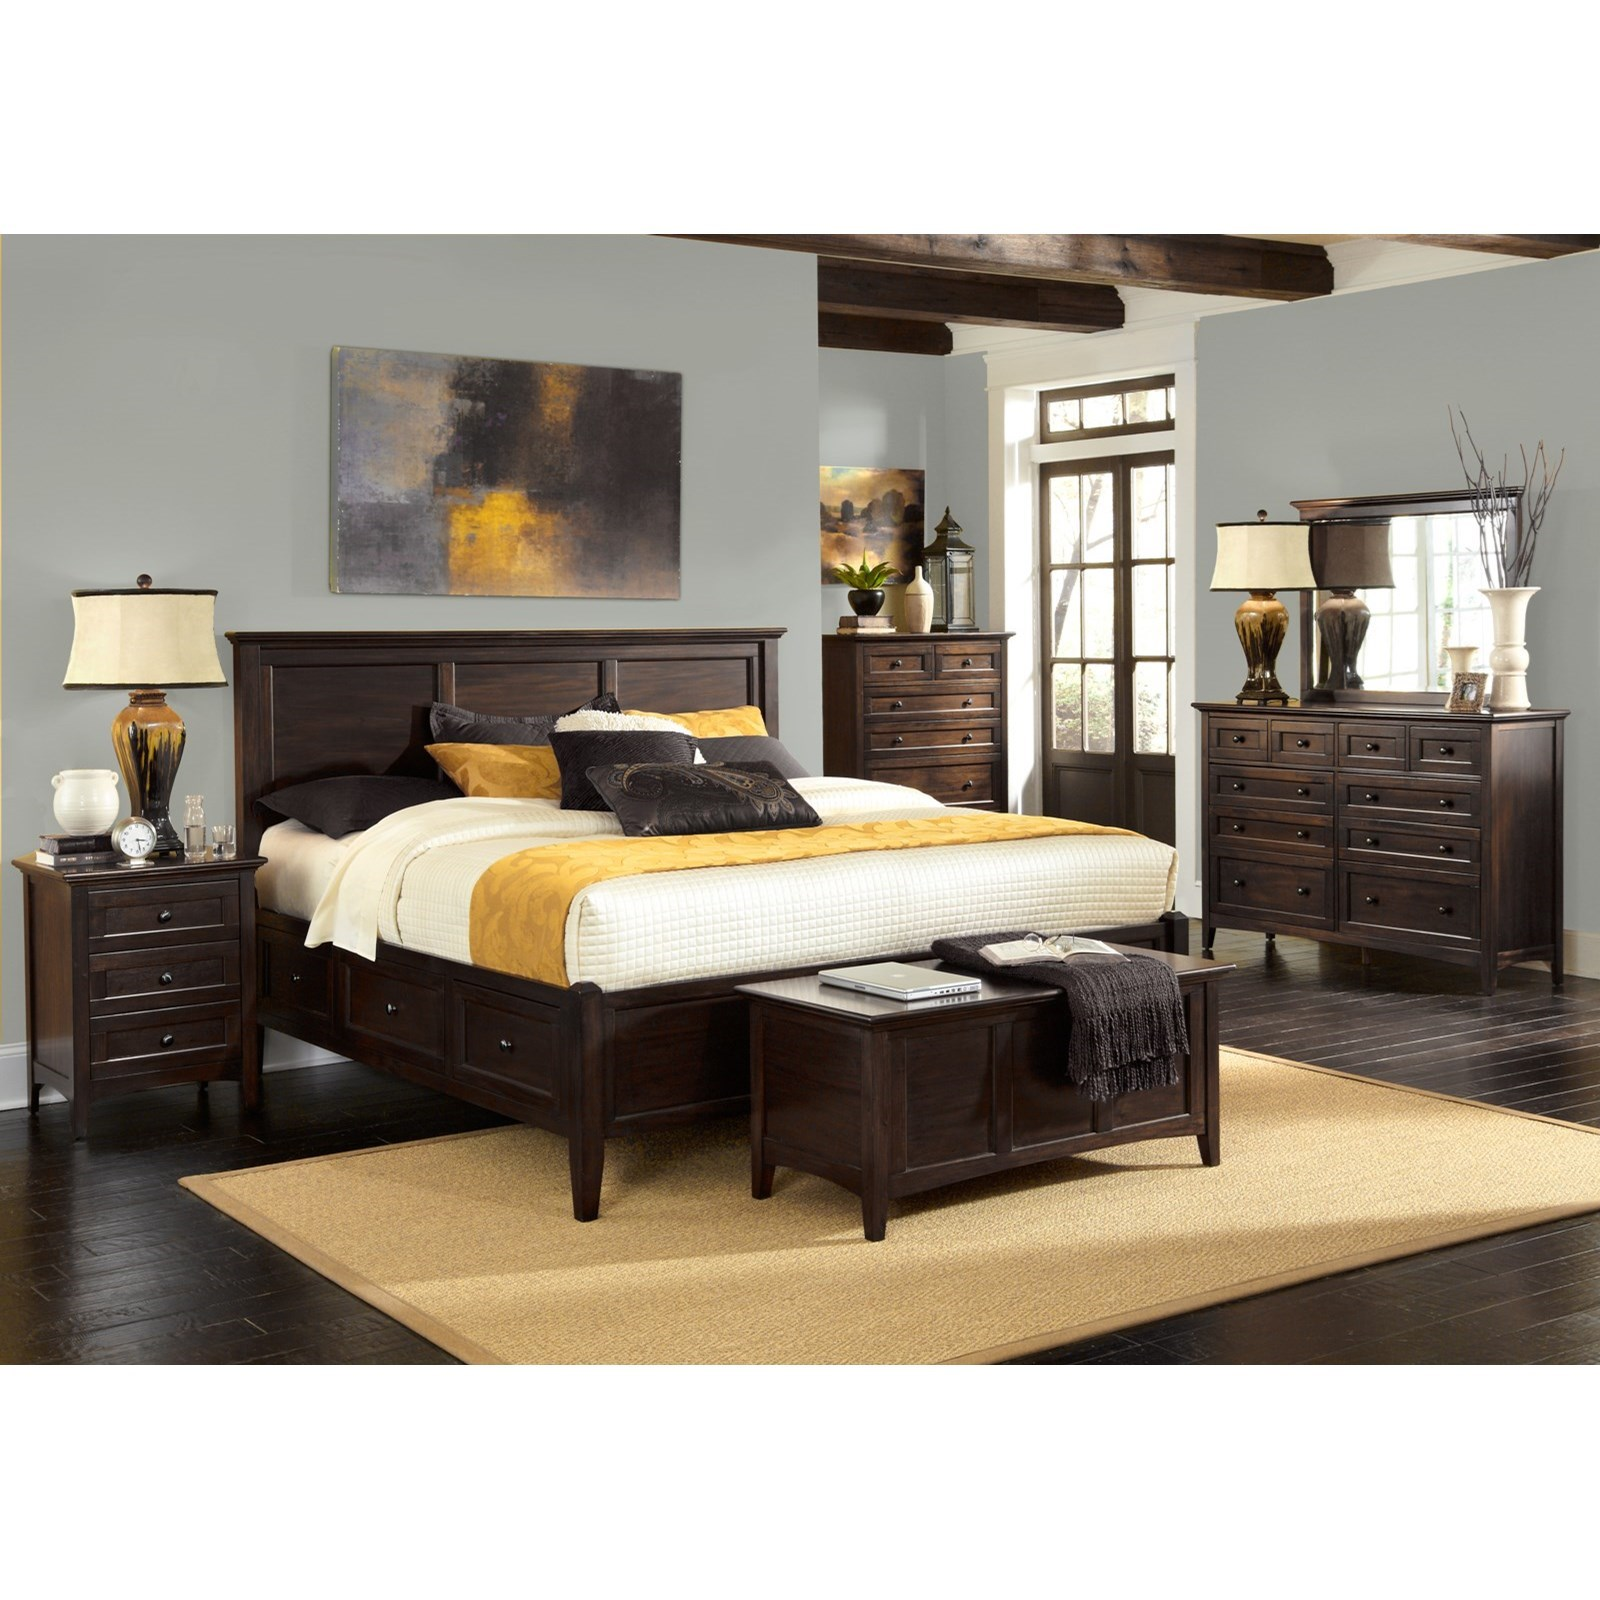 Westlake California King Storage Bedroom Group by AAmerica at Furniture and ApplianceMart